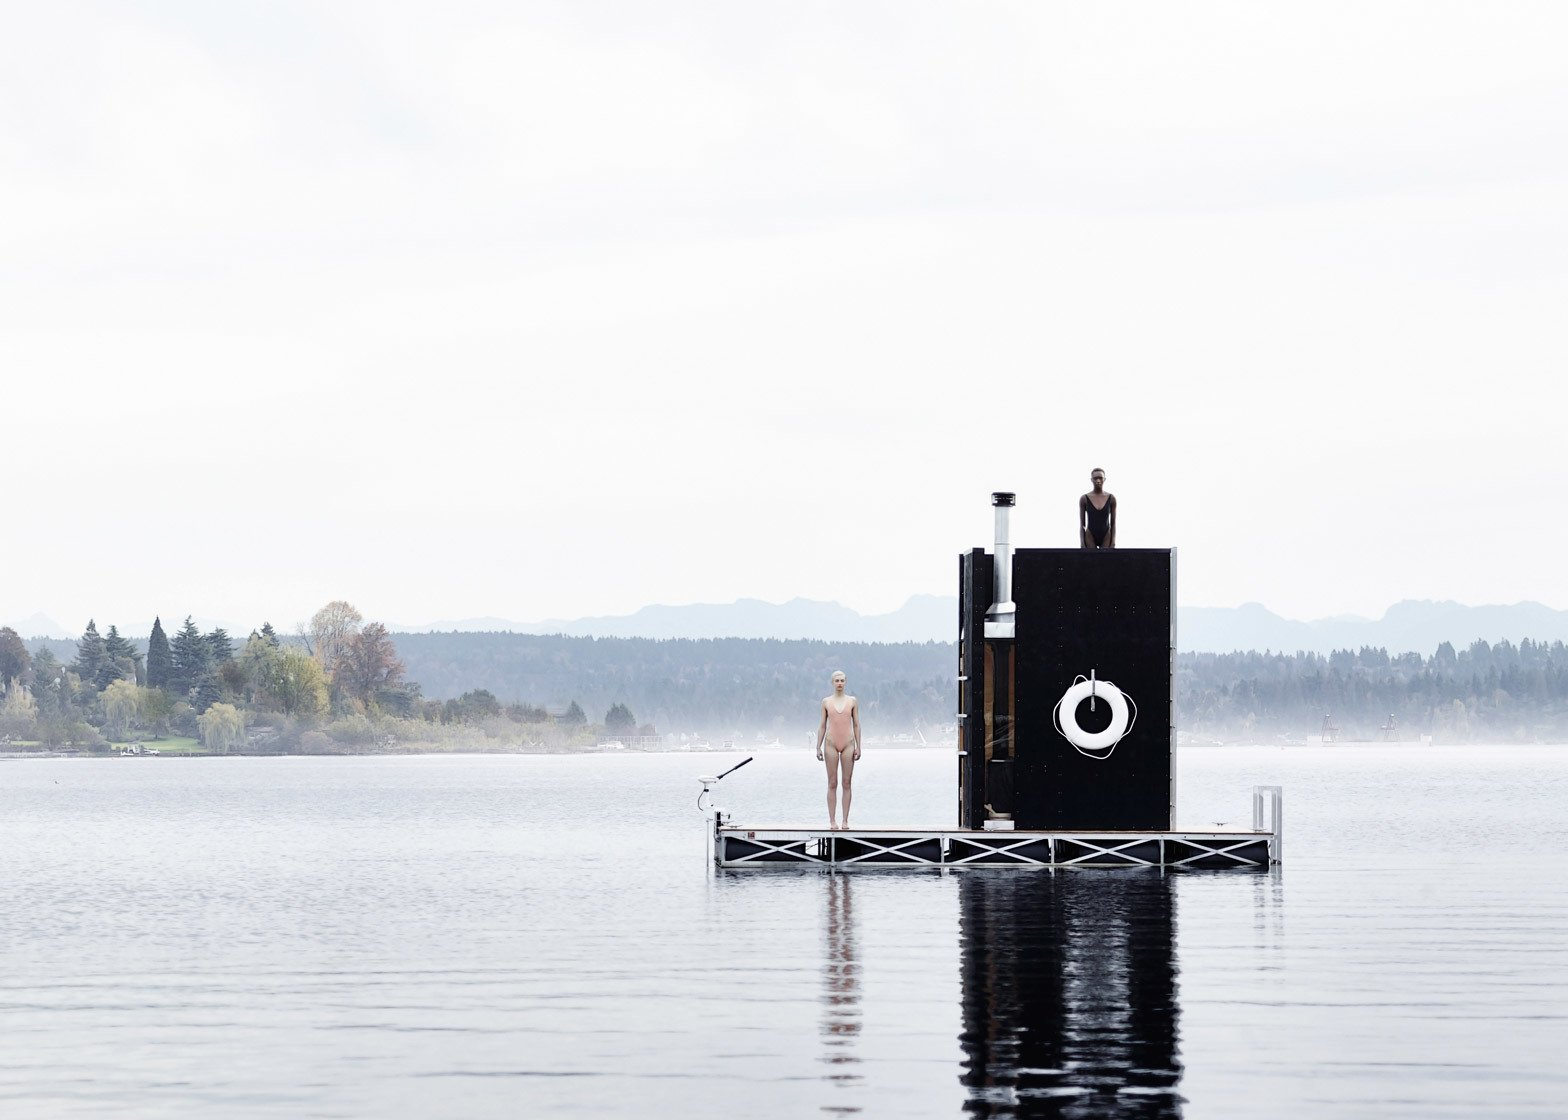 GOC Studio,  Floating Sauna, Seattle, Washington  Independence and Mobility by Chris Deam